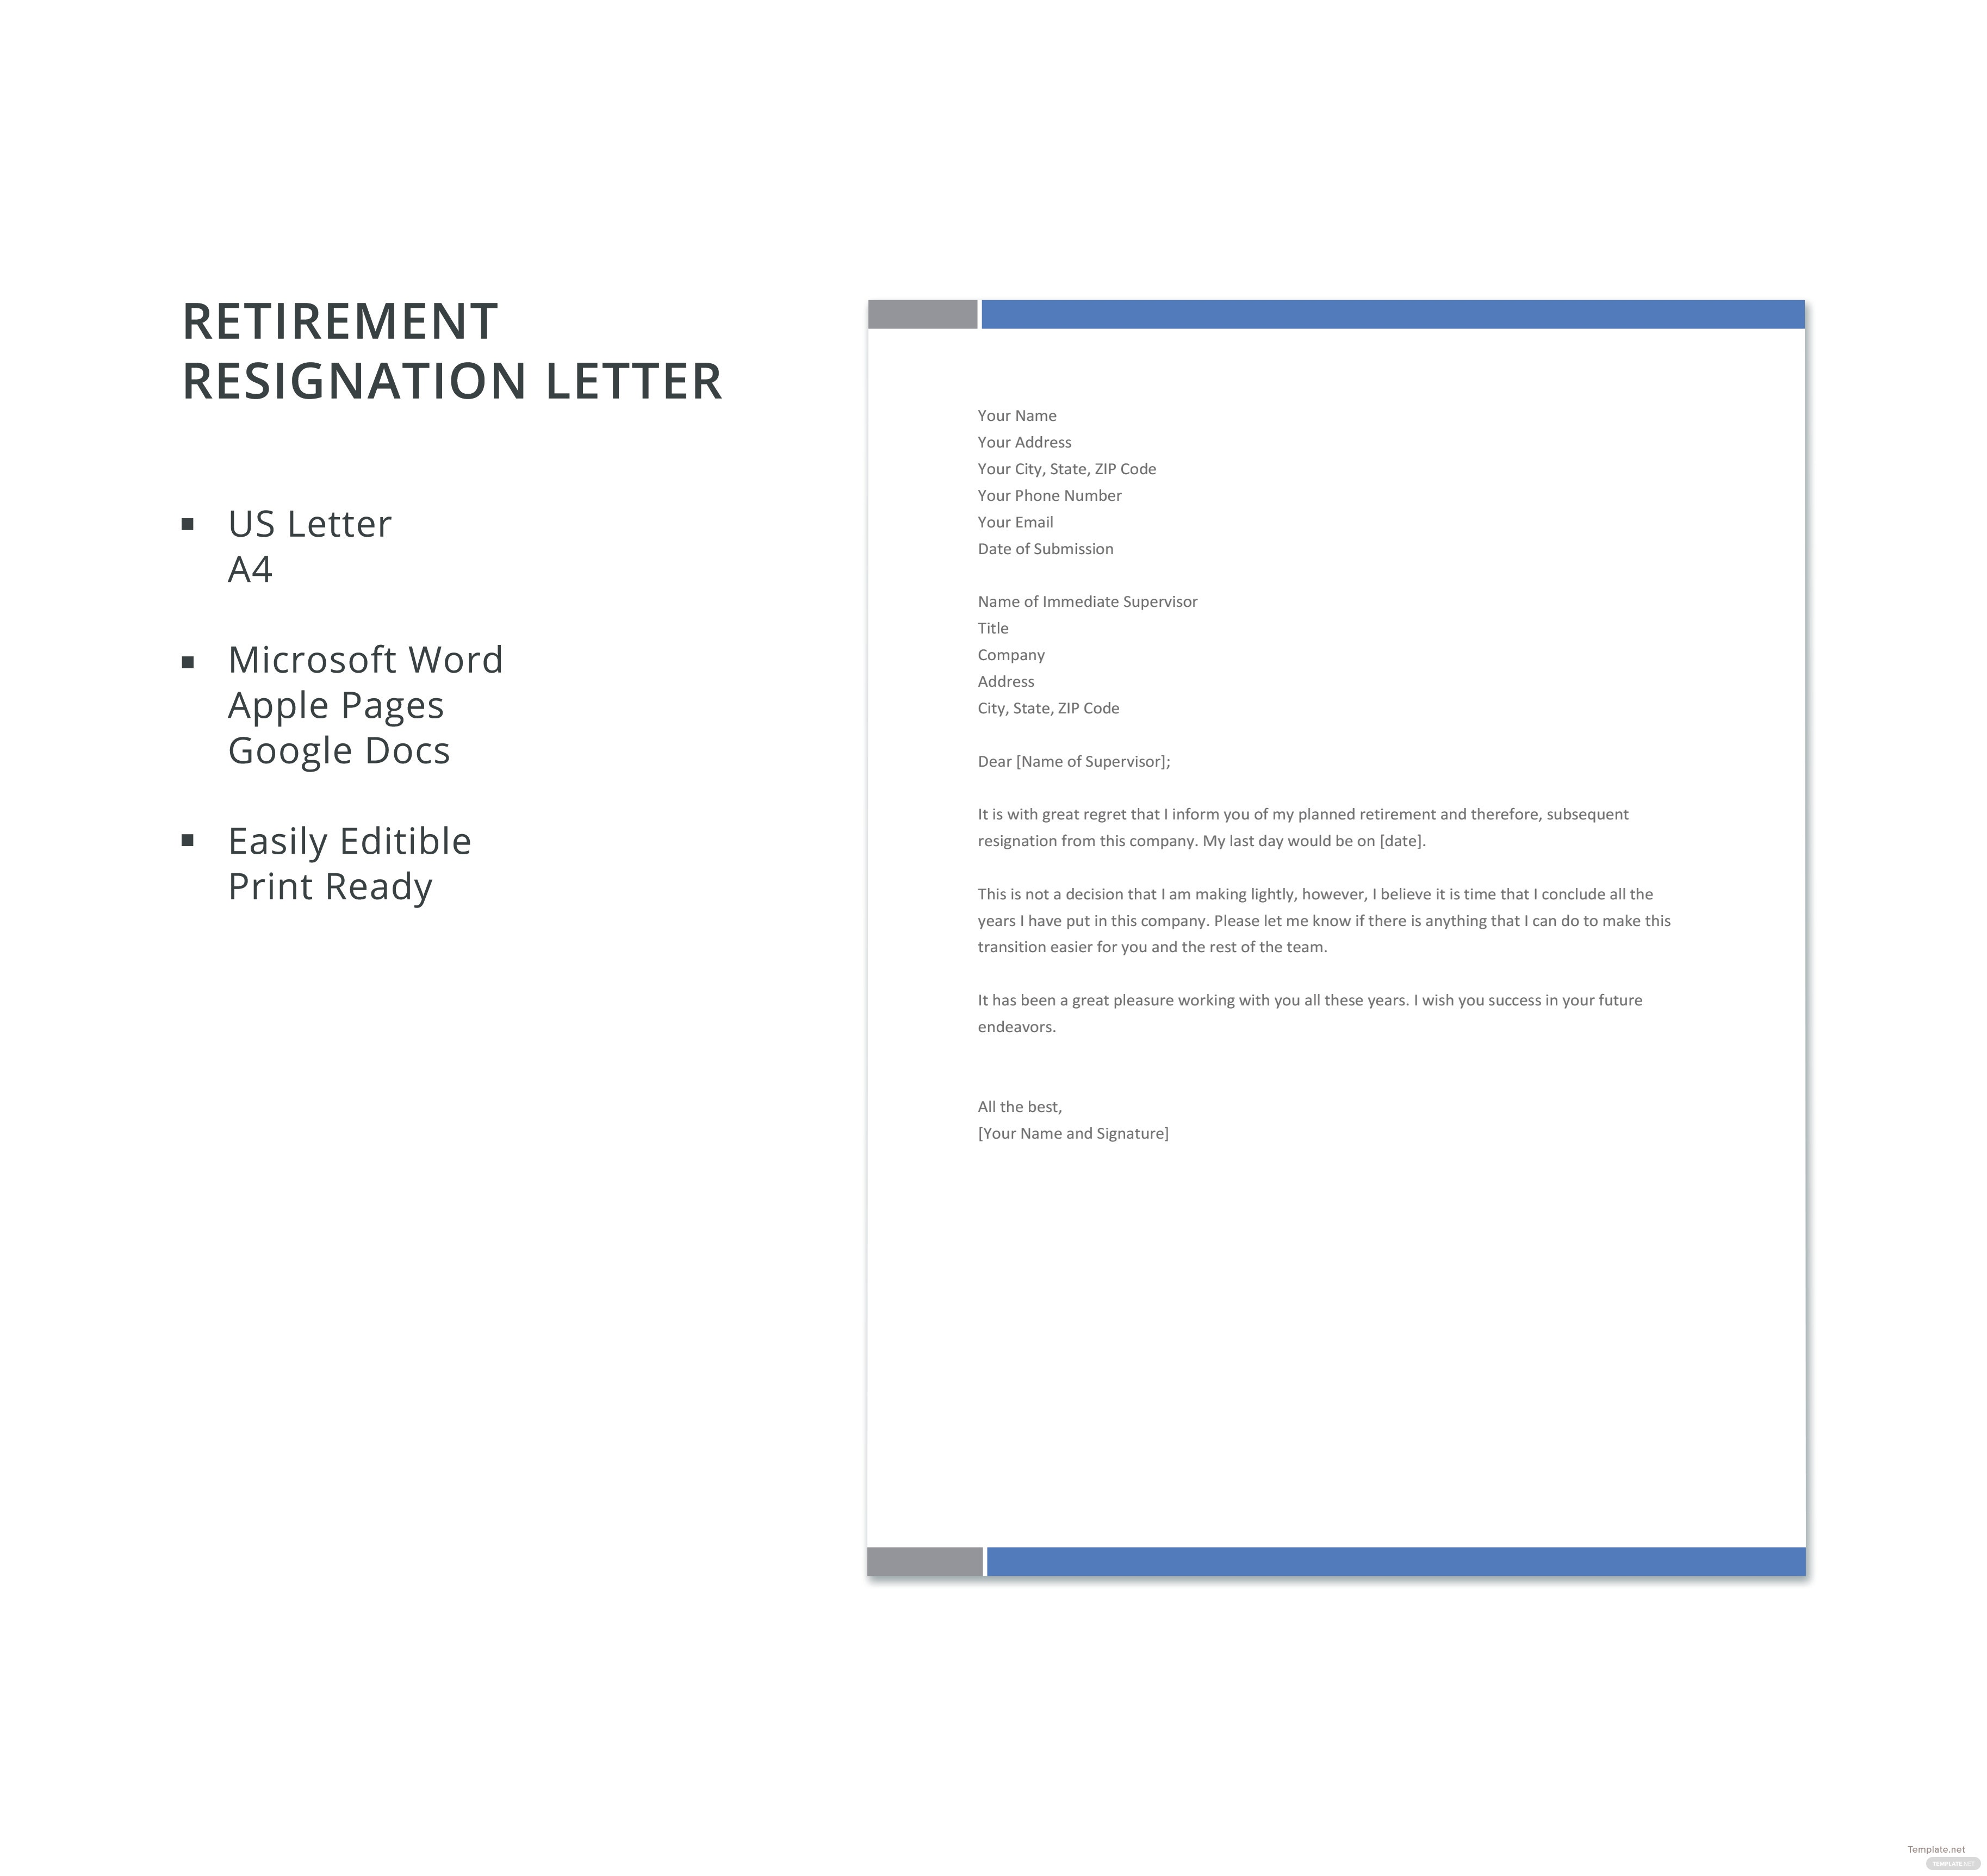 Free retirement resignation letter template in microsoft word apple retirement resignation letter template spiritdancerdesigns Gallery